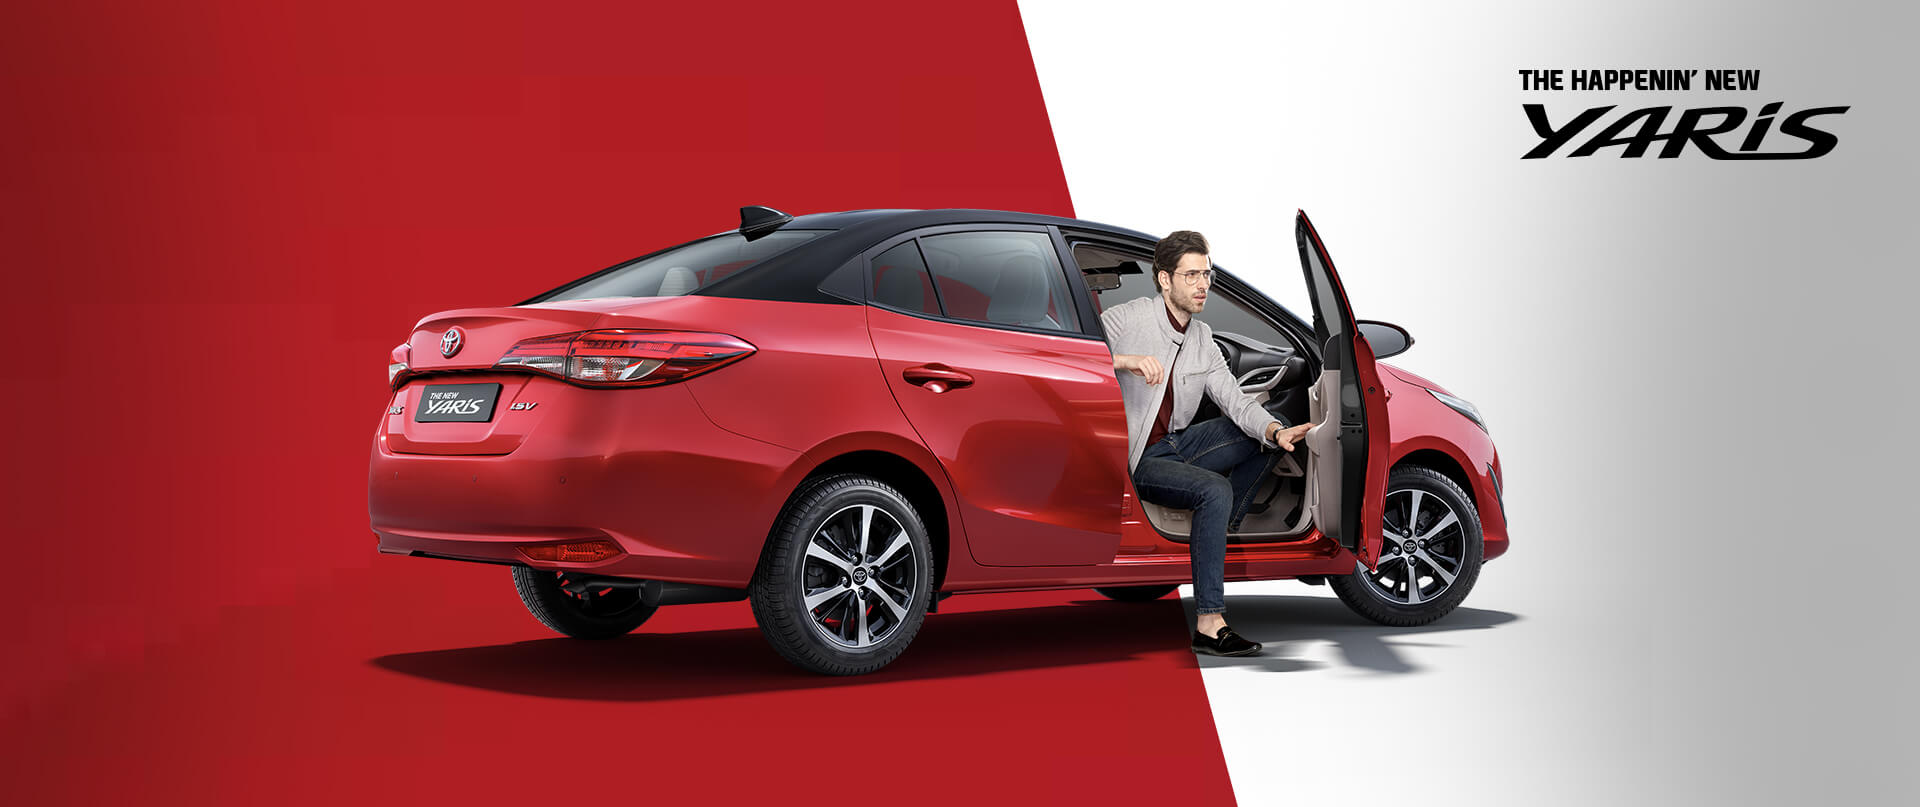 Toyota Yaris Discontinued in India Due to Poor Sales 2